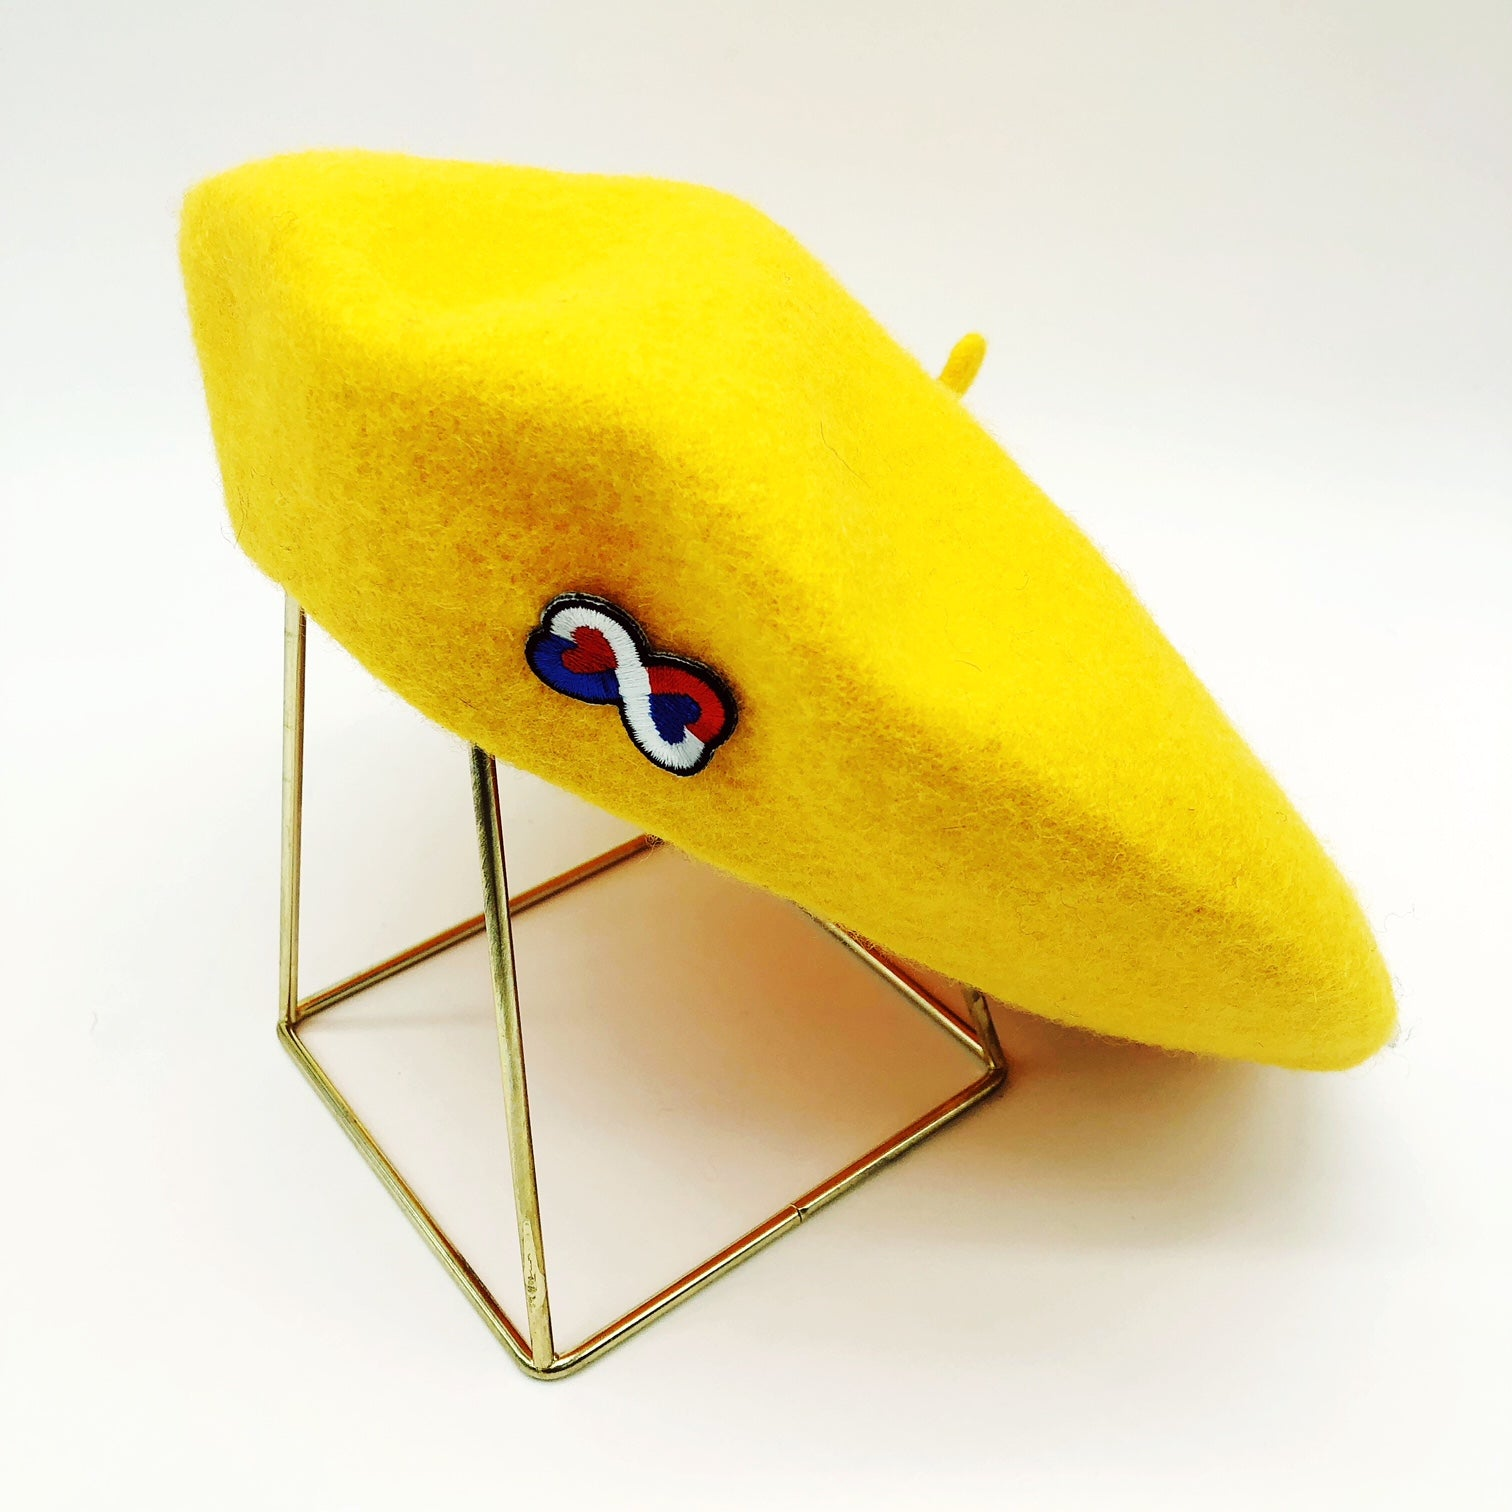 béret-jaune-coeur-tricolore-french-frenchie-laine-gili